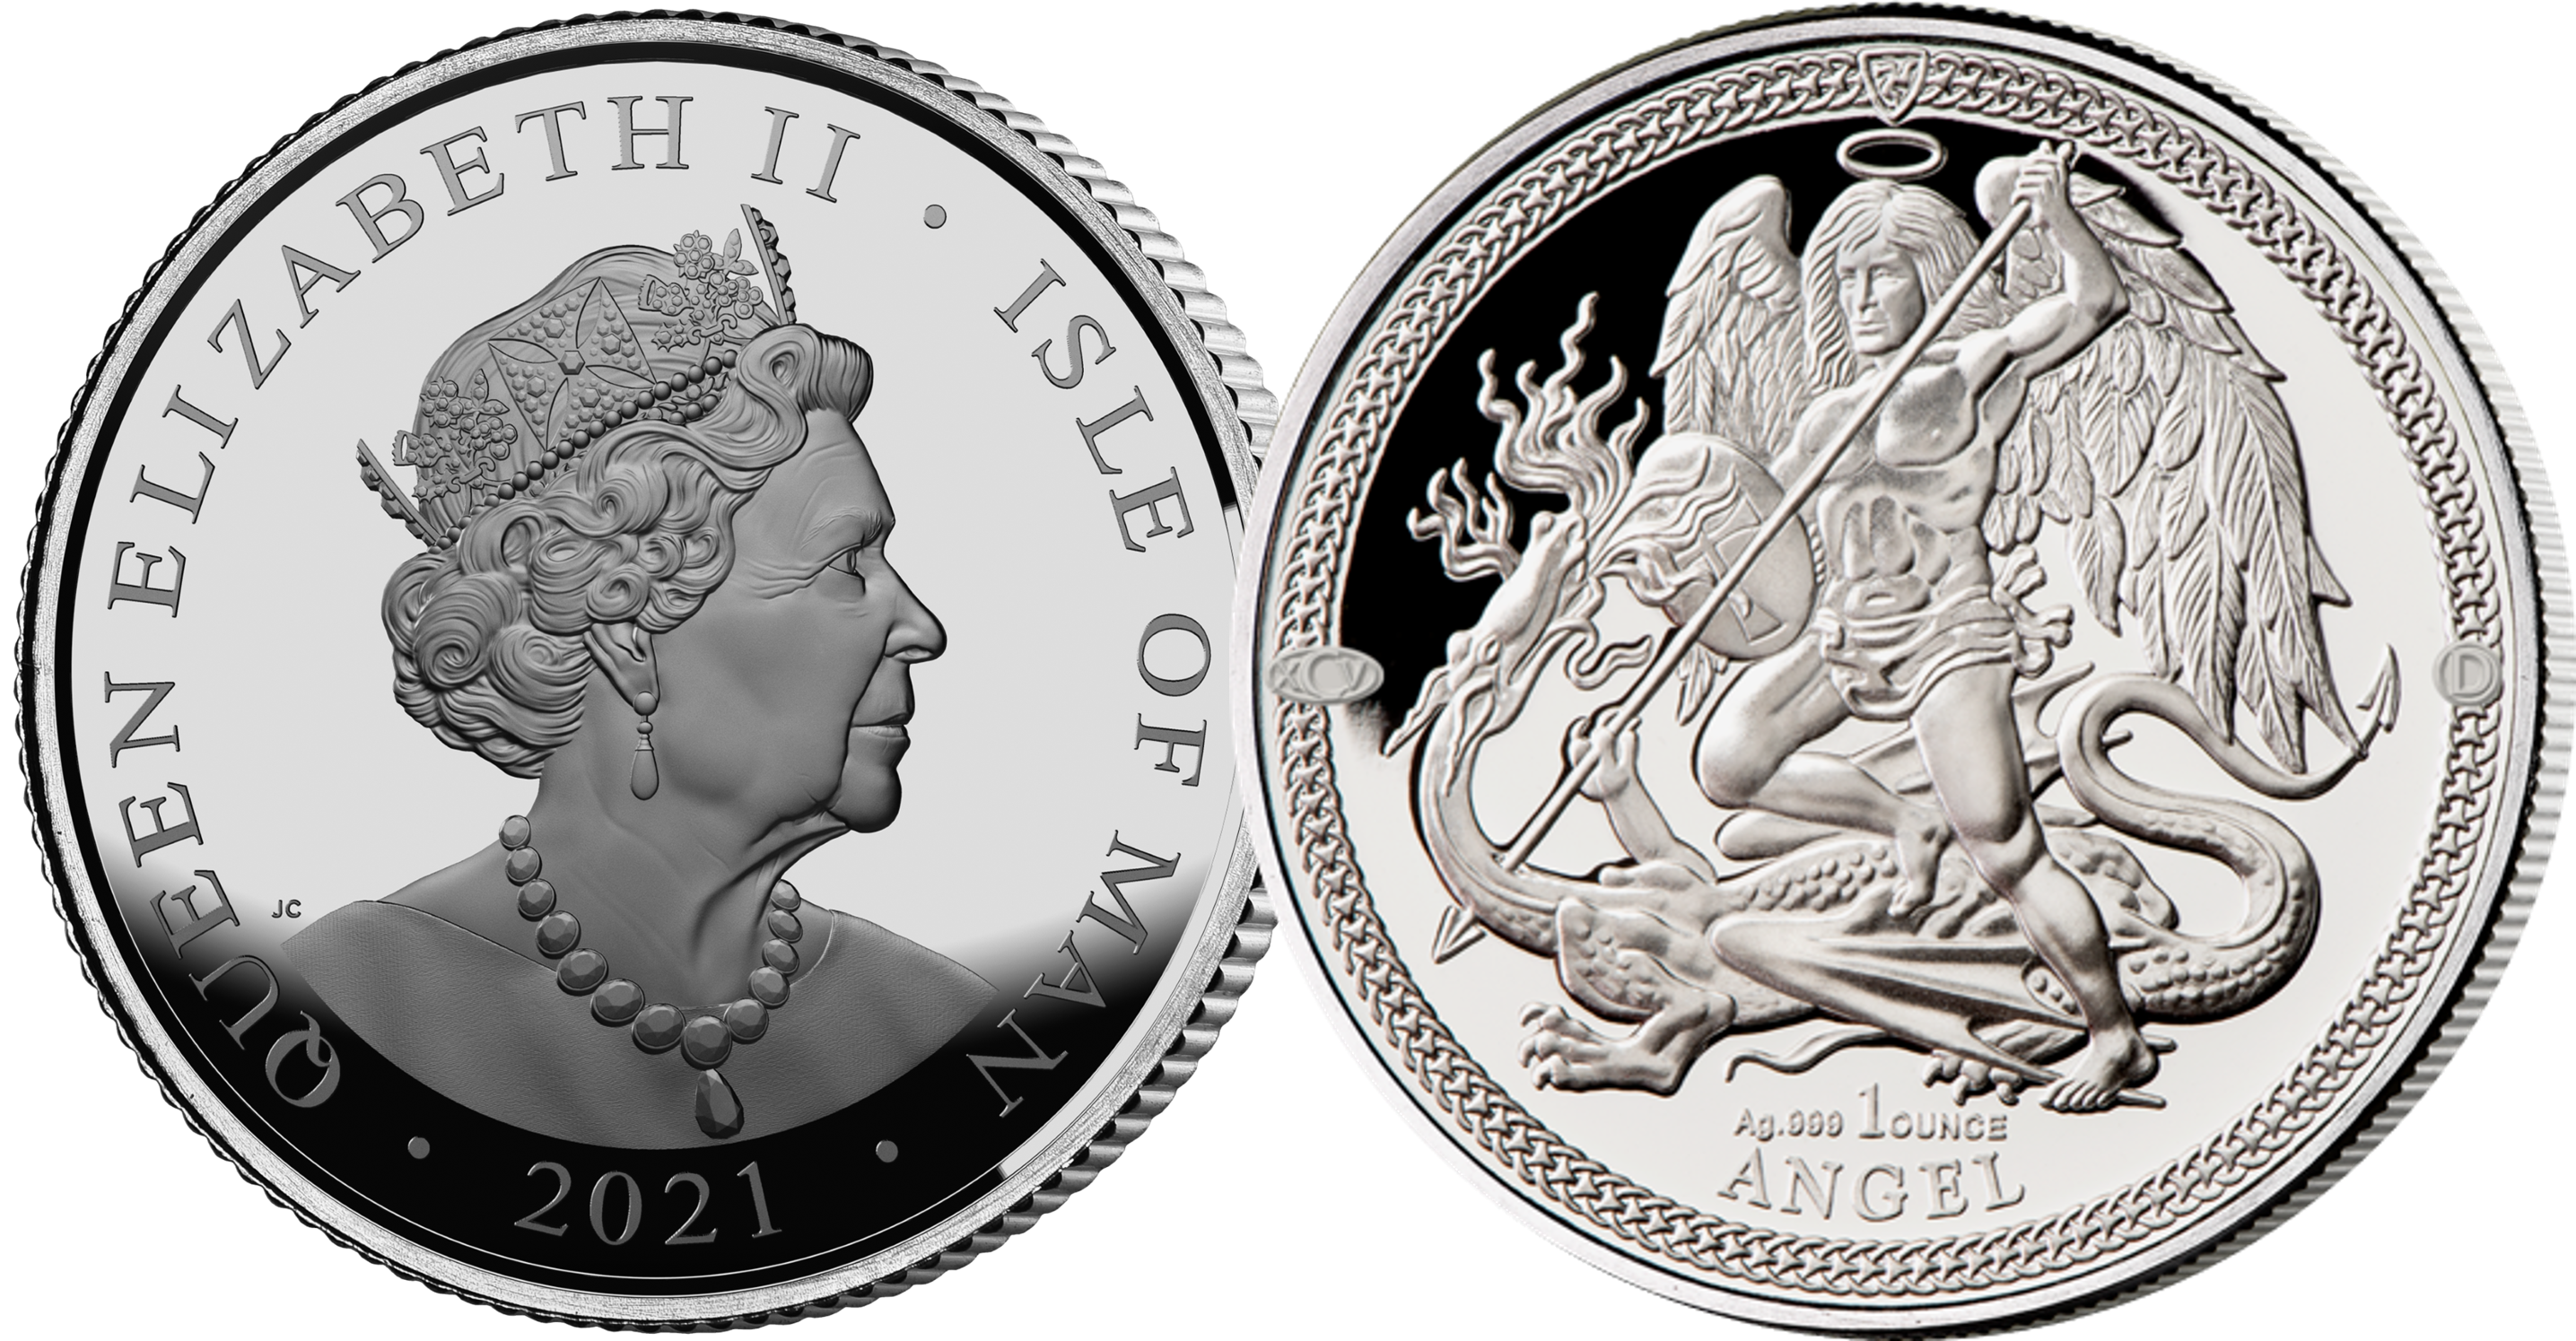 The world wide renowned Angel design commemorates a Dual Royal Anniversary with an double mintmark for the first time ever!